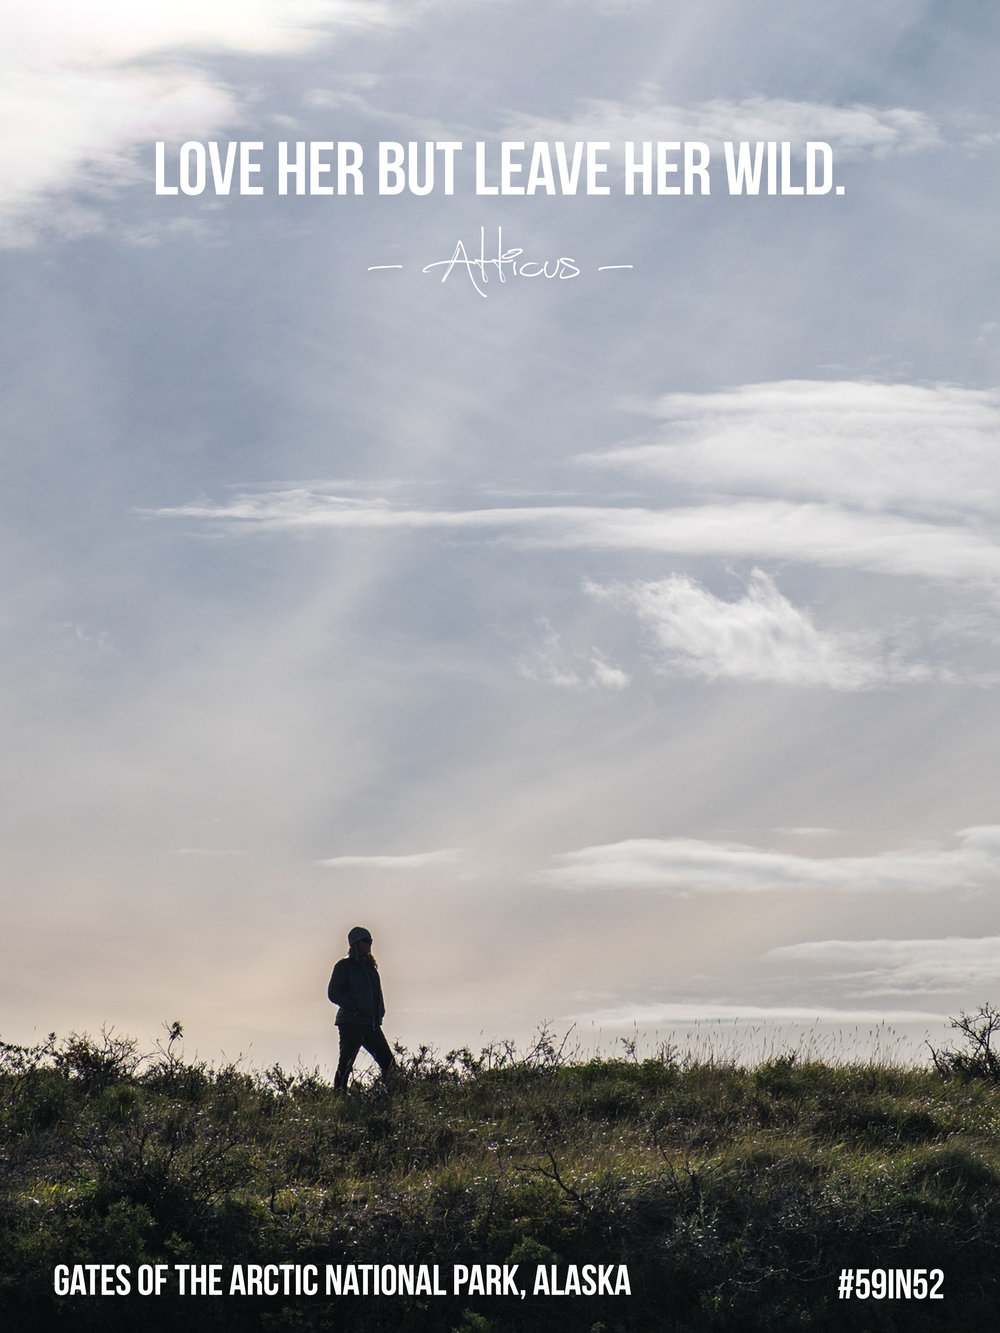 'Love her but leave her wild.' - Atticus